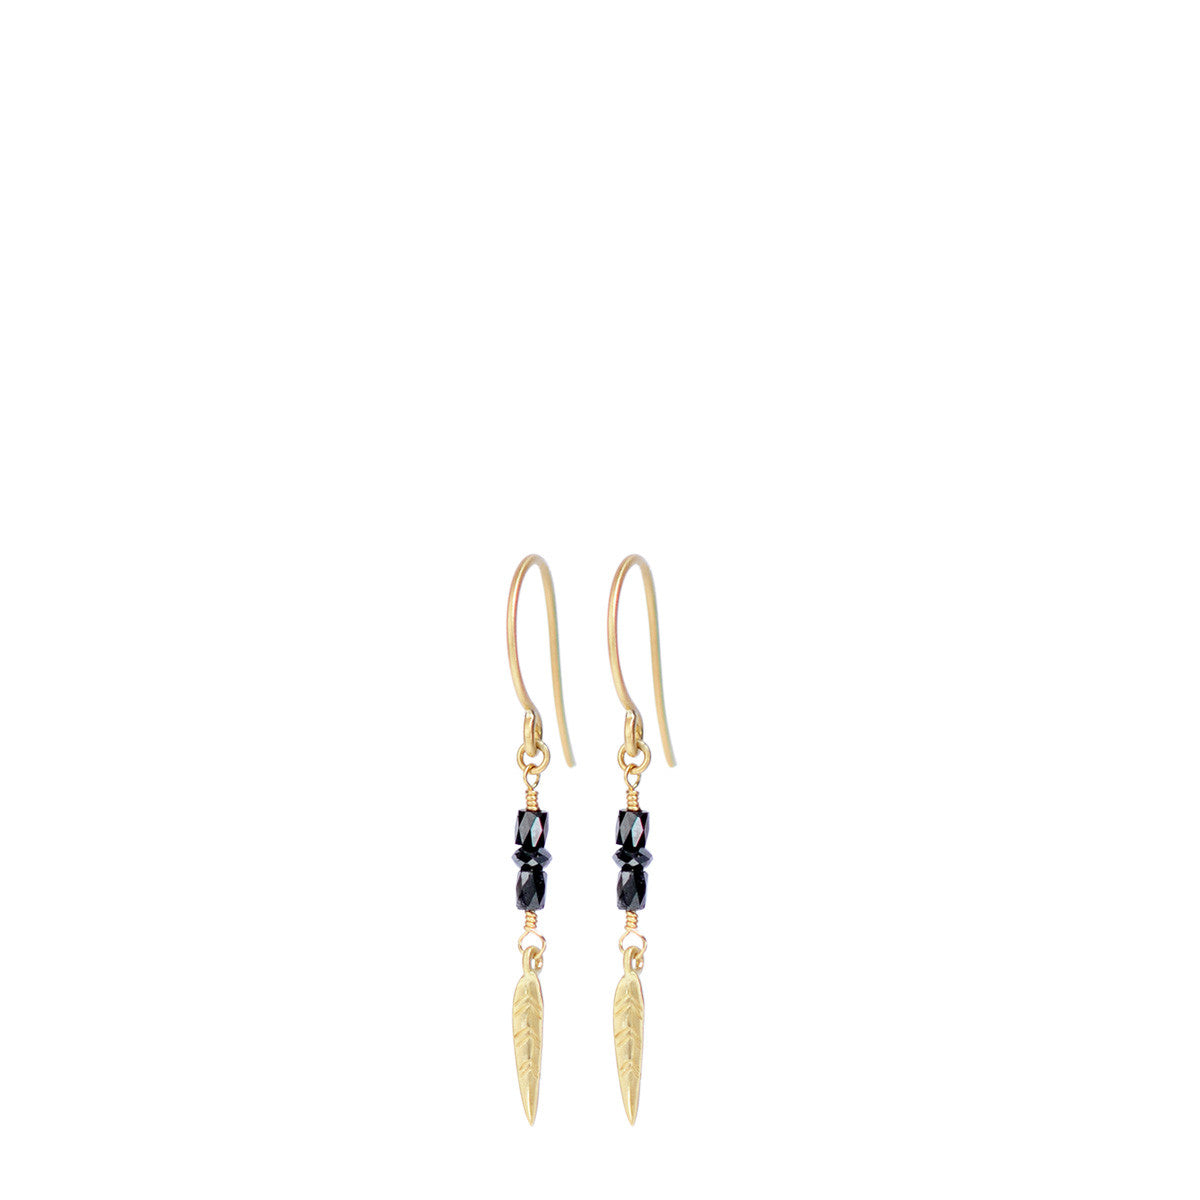 18K Gold Short Black Diamond Earrings with Feathers